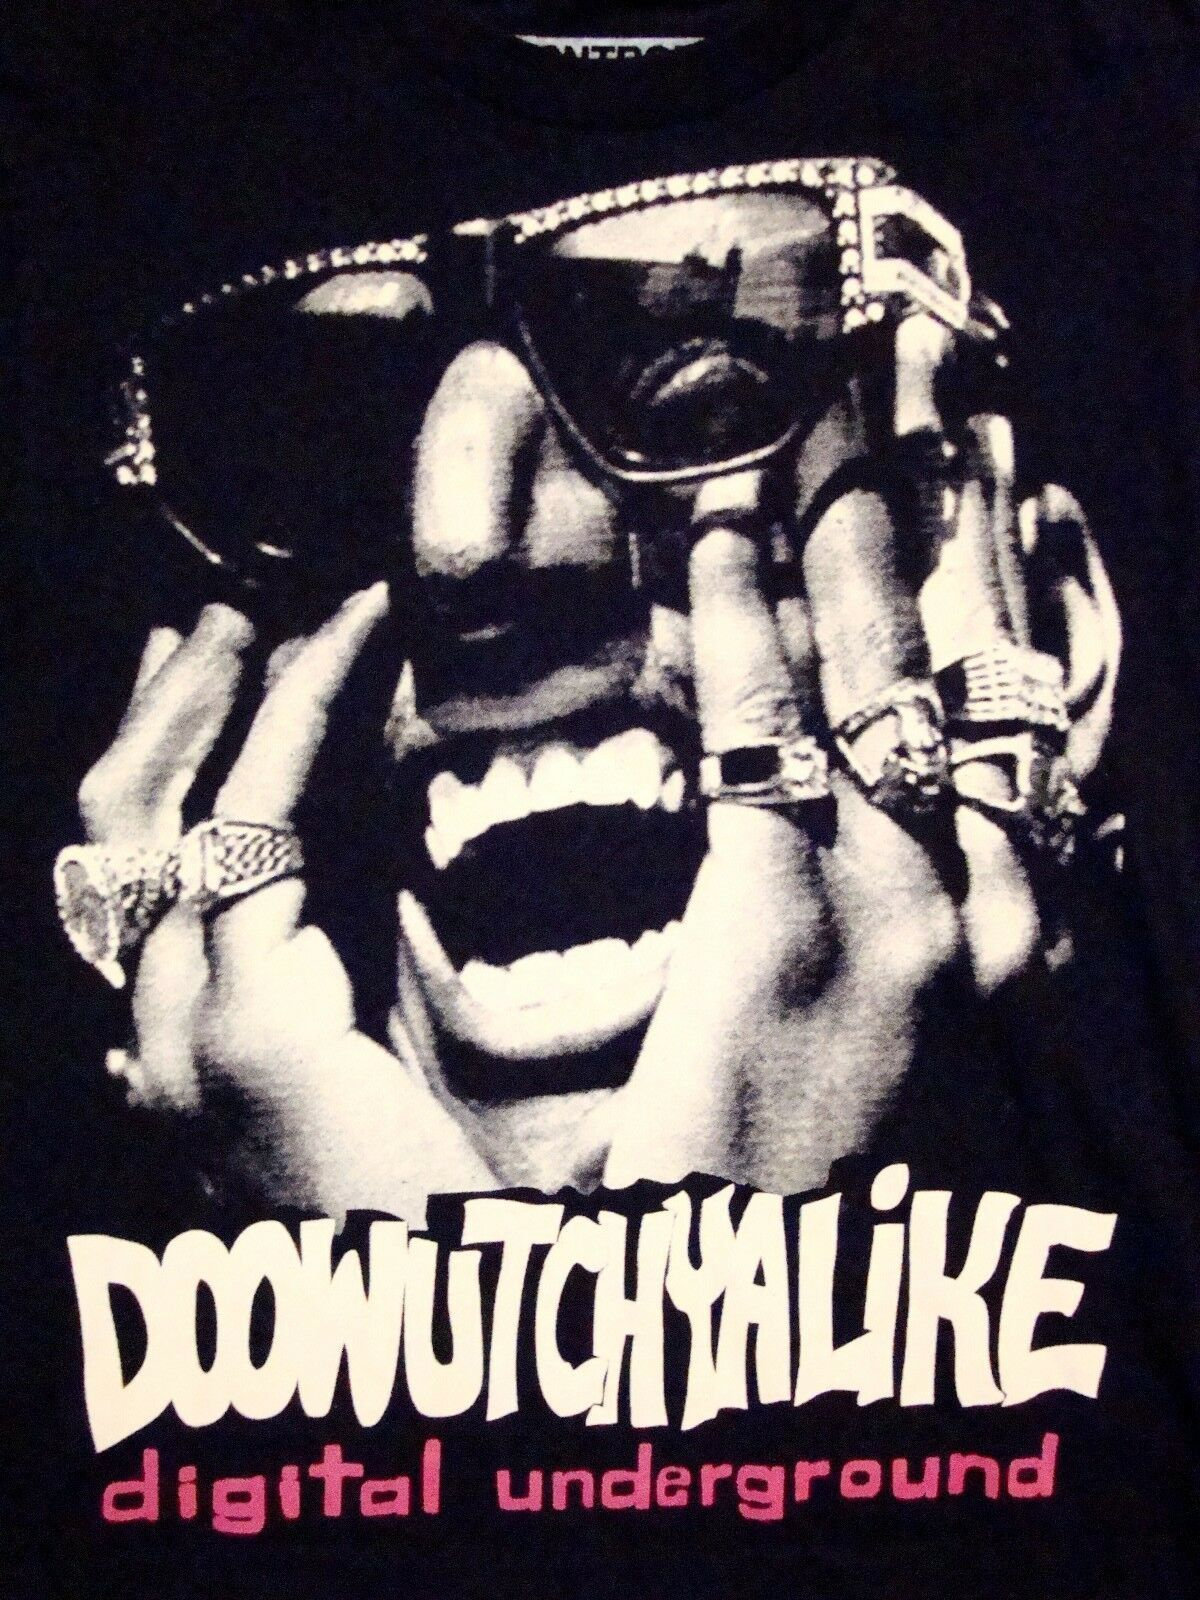 Primary image for Doowutchyalike Digital Underground Do What You Like 90s Rap Hip Hop T Shirt XS/S